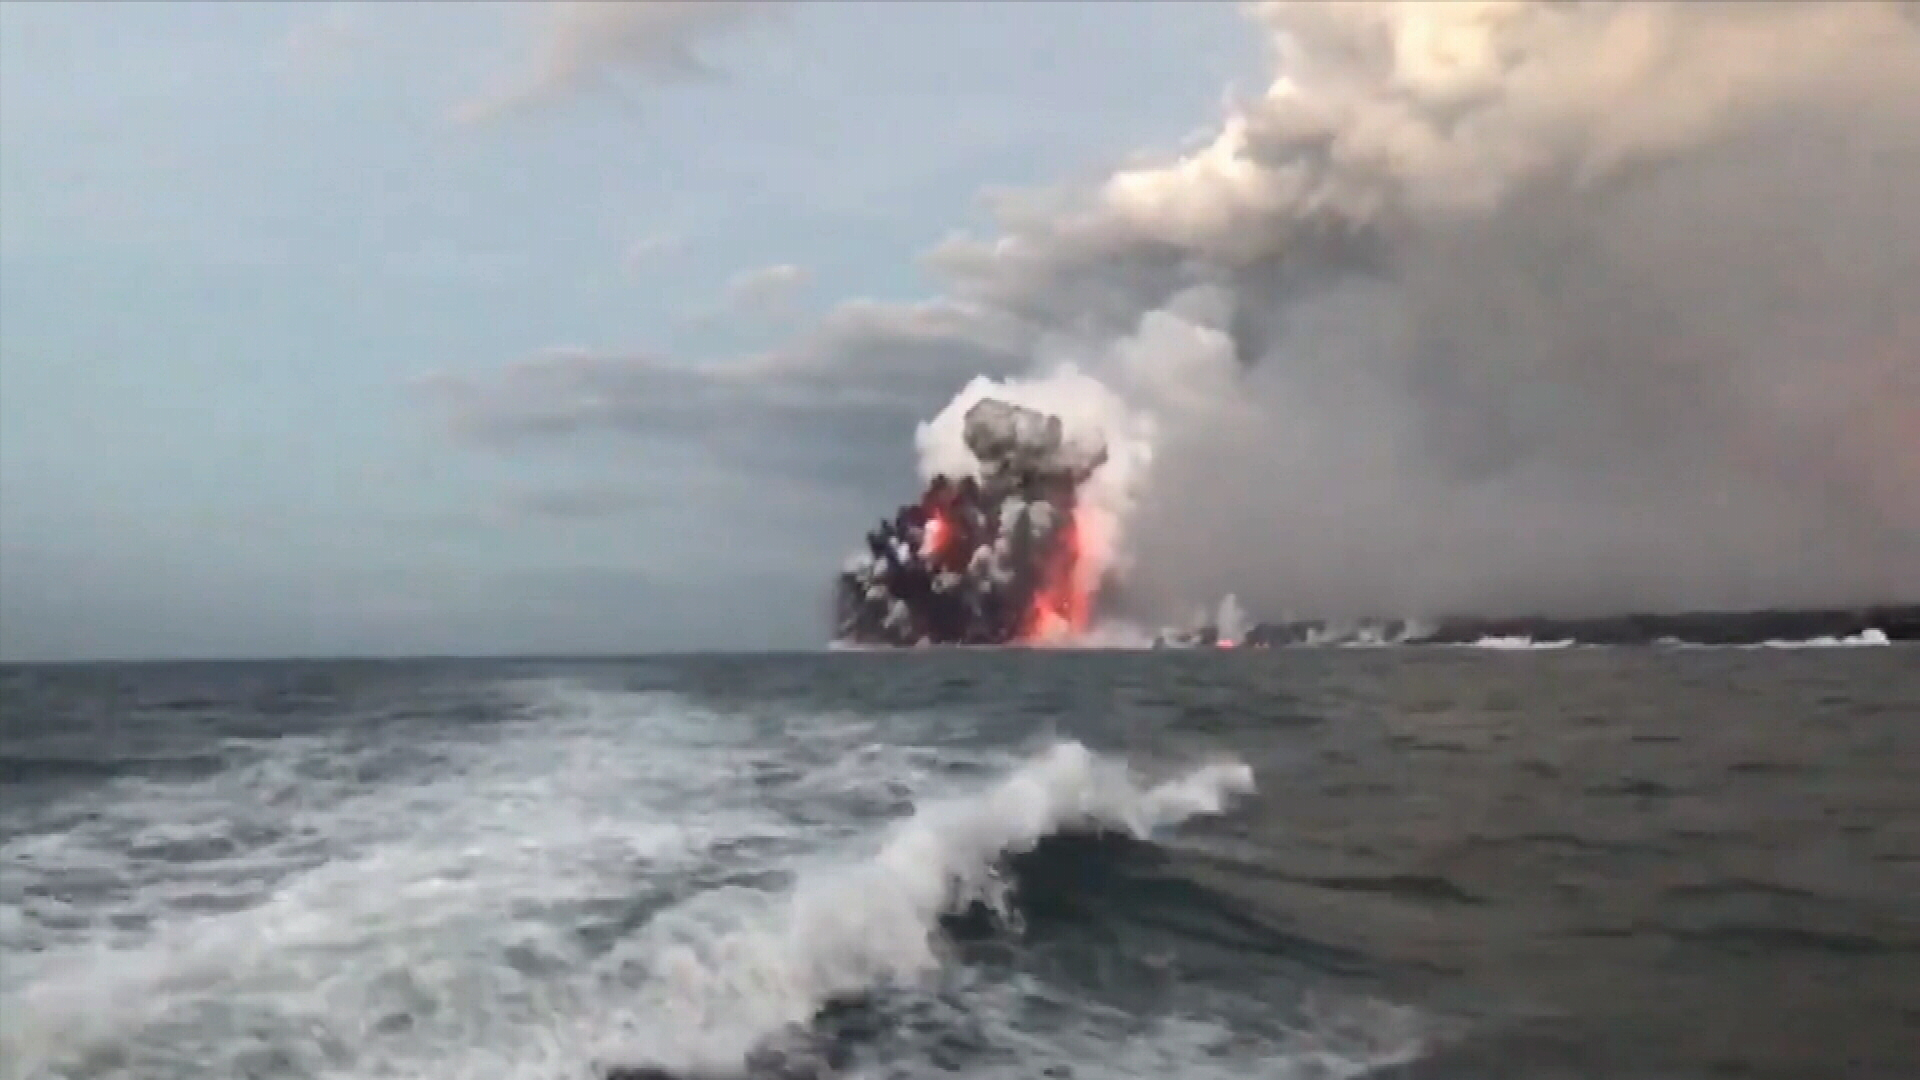 Hawaii tour boats continue despite lava explosion